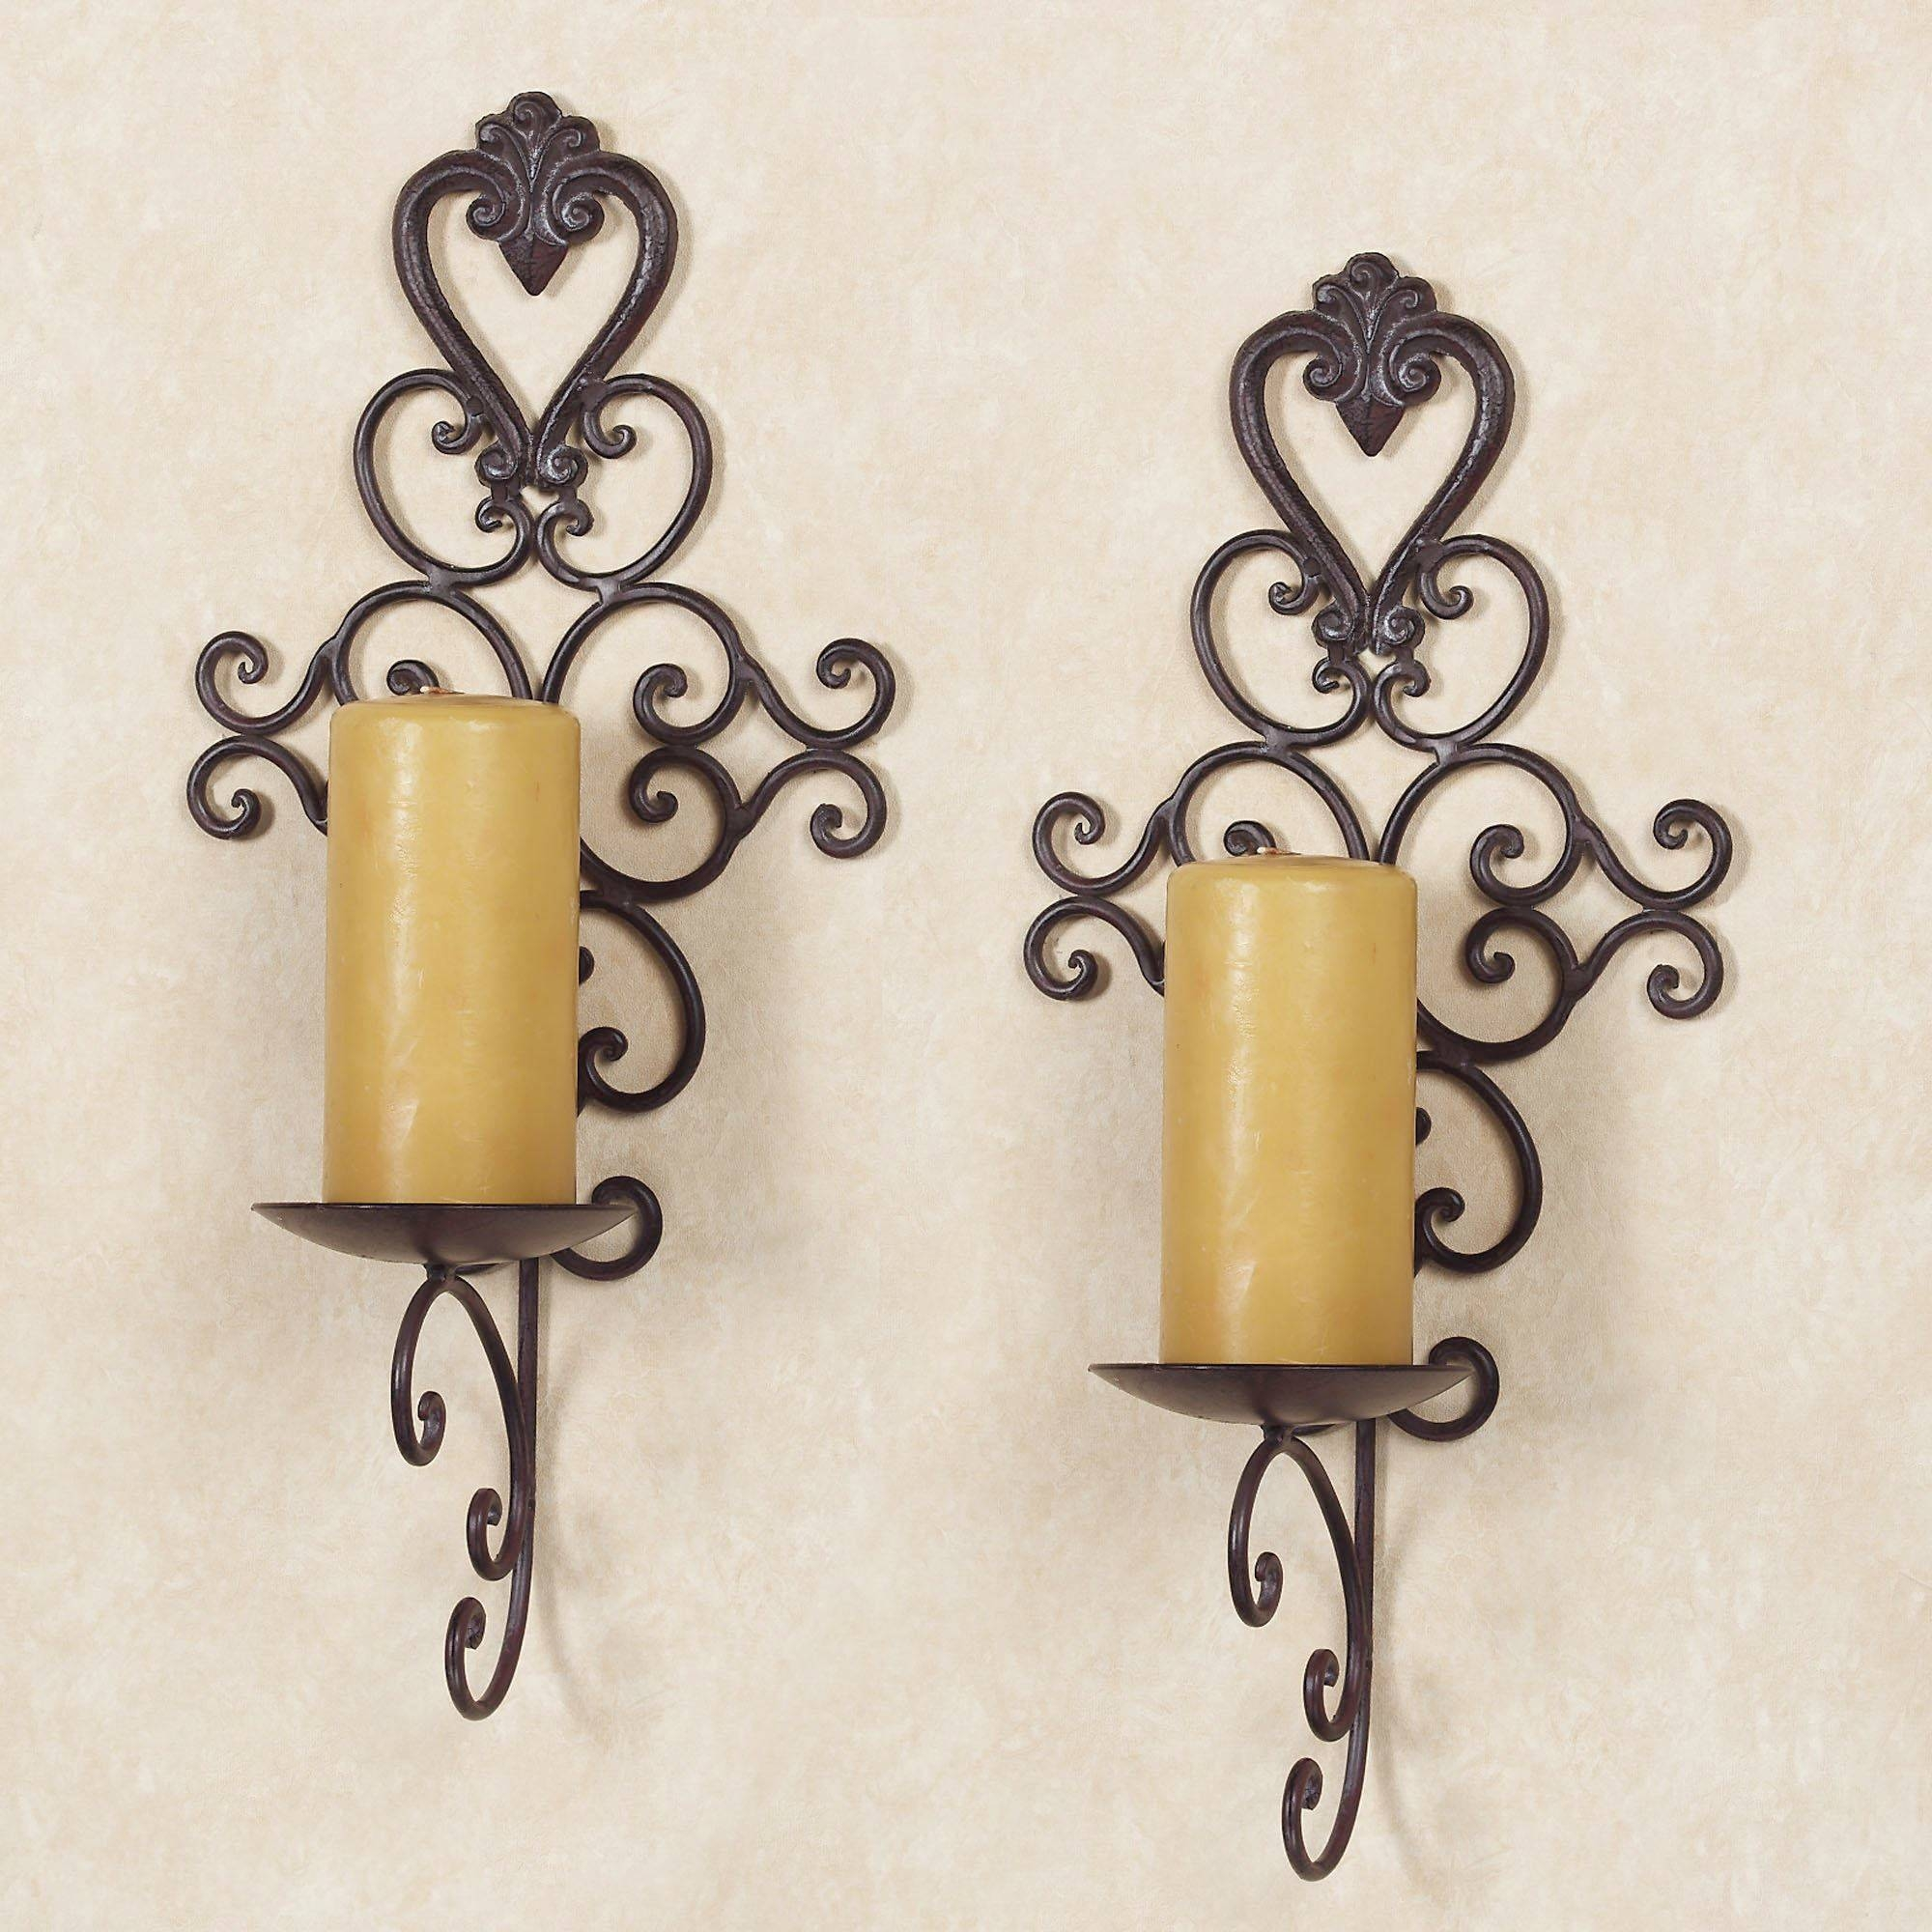 Wall Candle Holder Design Ideas — The Decoras Jchansdesigns In 2017 Metal Wall Art Candle Holder (View 6 of 20)